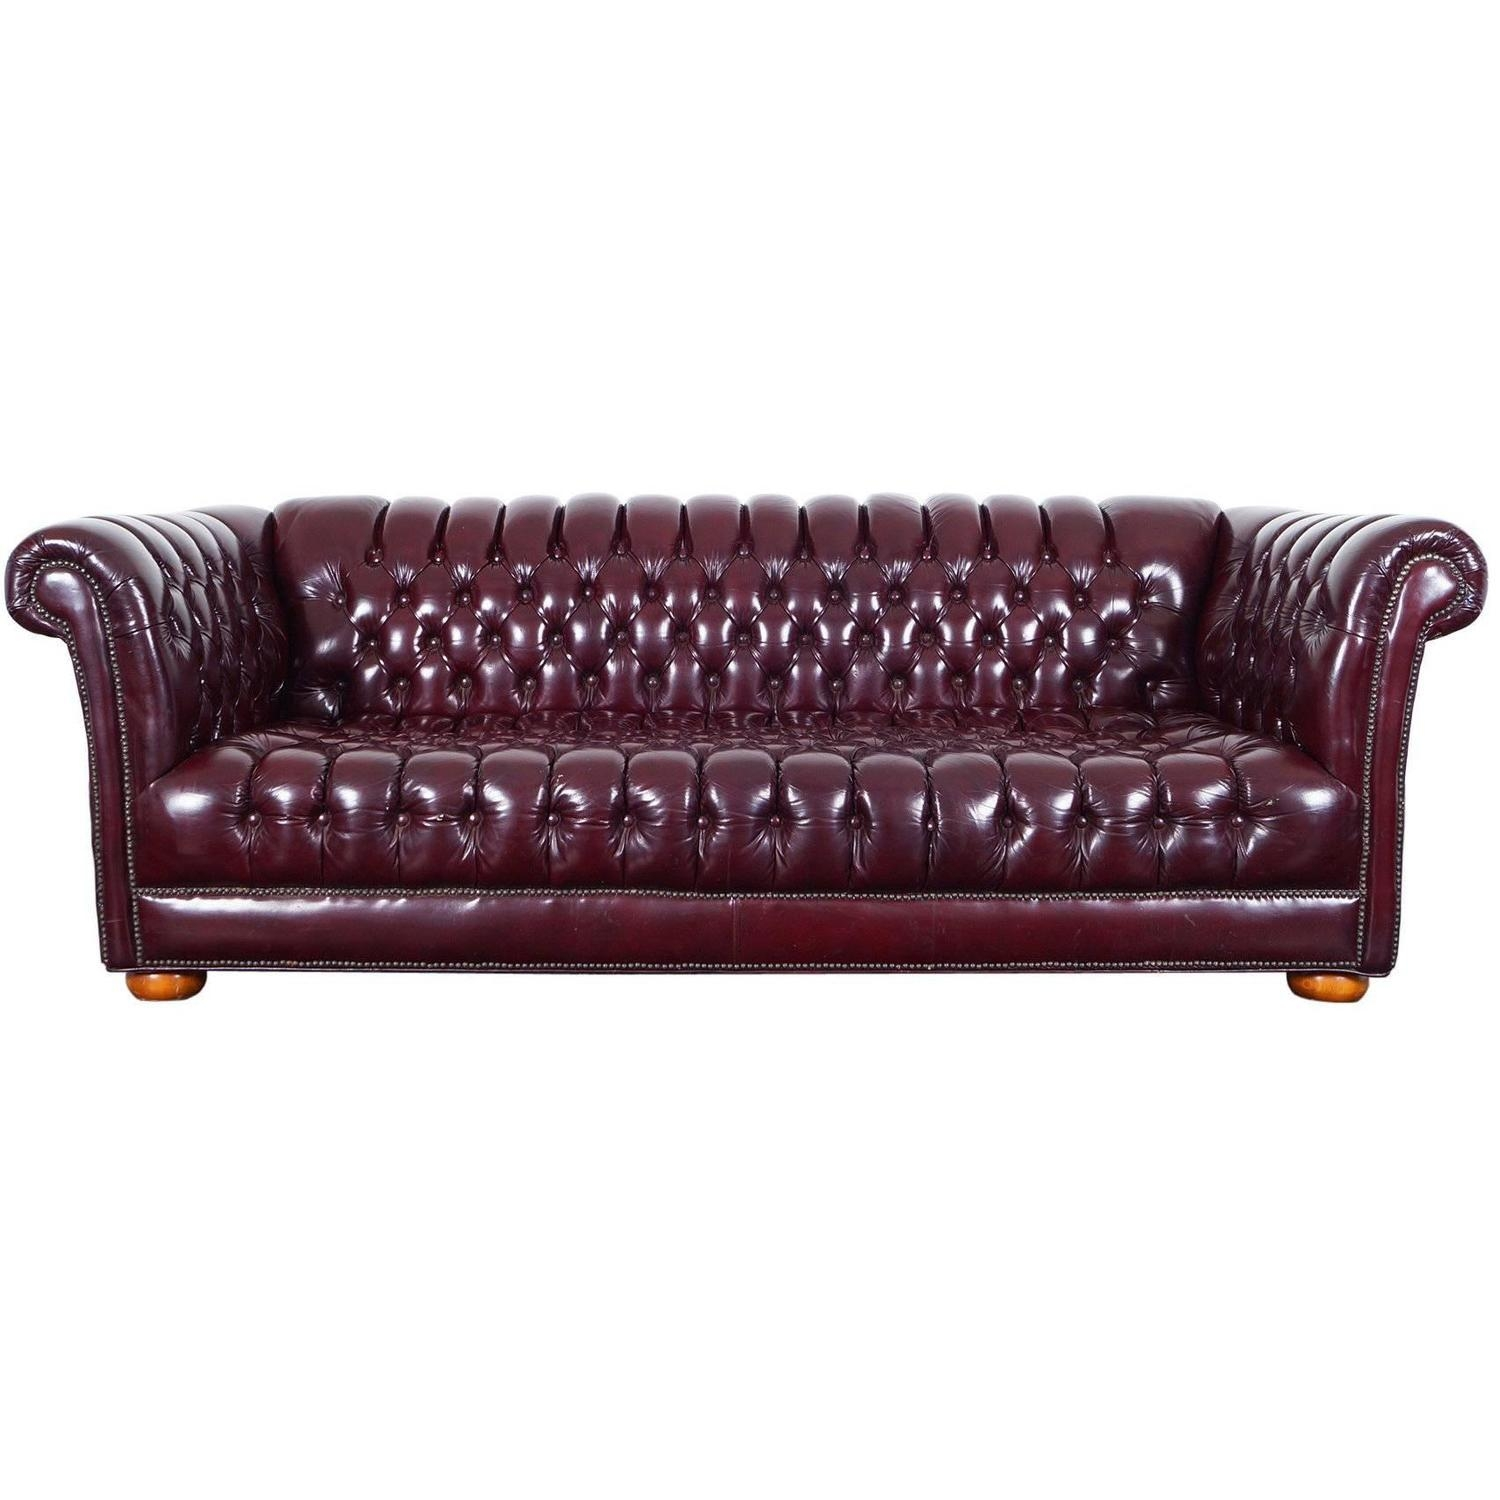 Vintage Burgundy Leather Chesterfield Sofa For Sale At 1Stdibs in Vintage Chesterfield Sofas